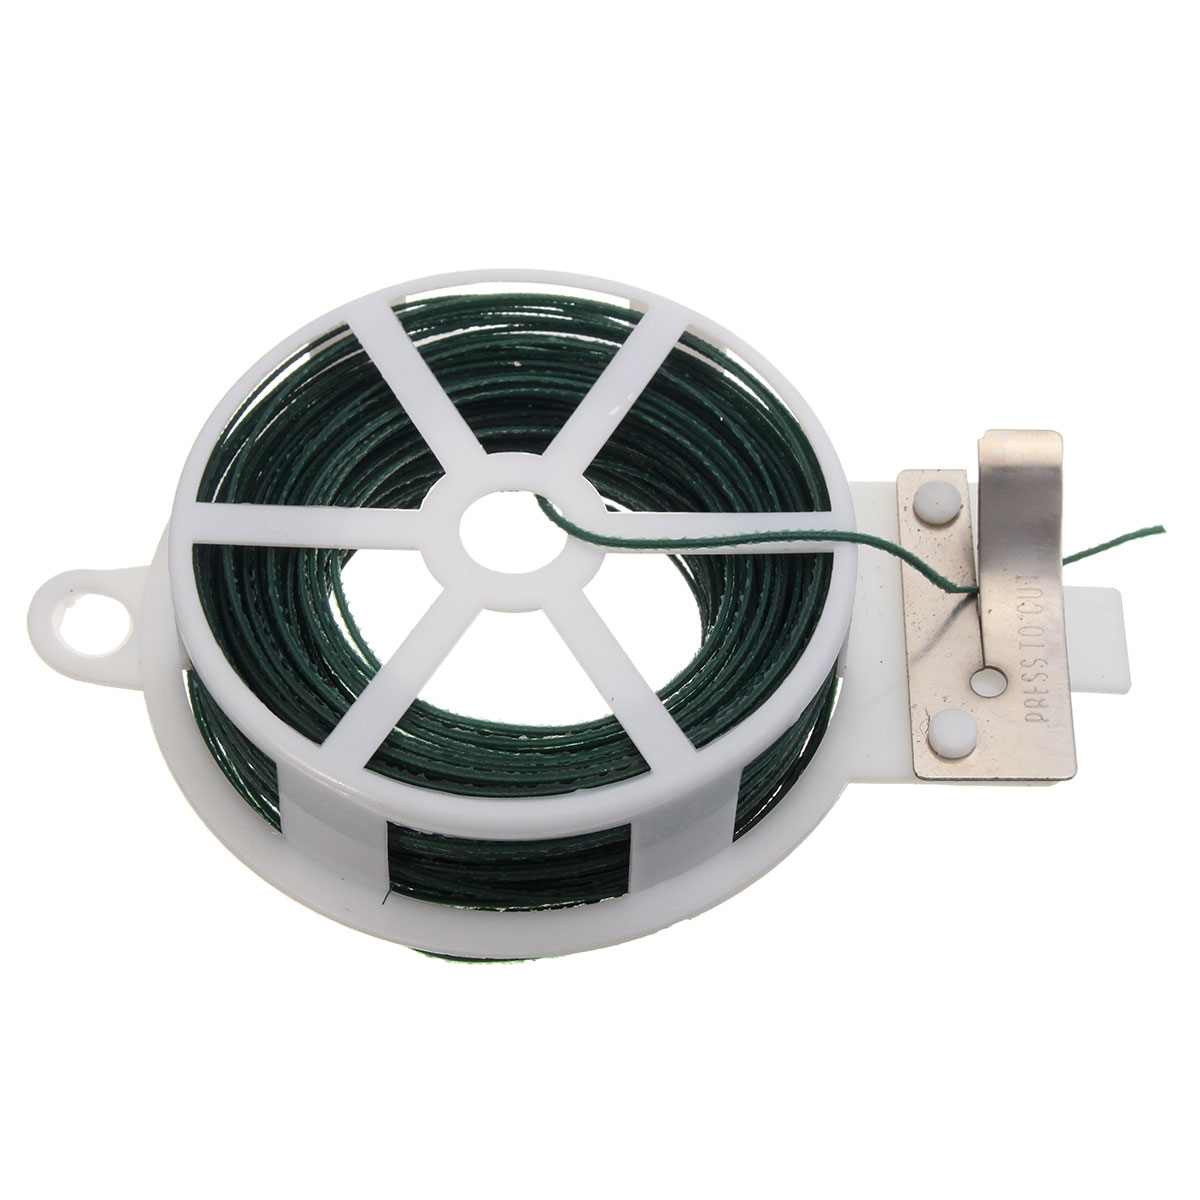 Newest Cable Tie 30M Roll Wire Twist Tie Reel Green Garden Gardening Cable String with Cutter Slicer Plastic and Iron